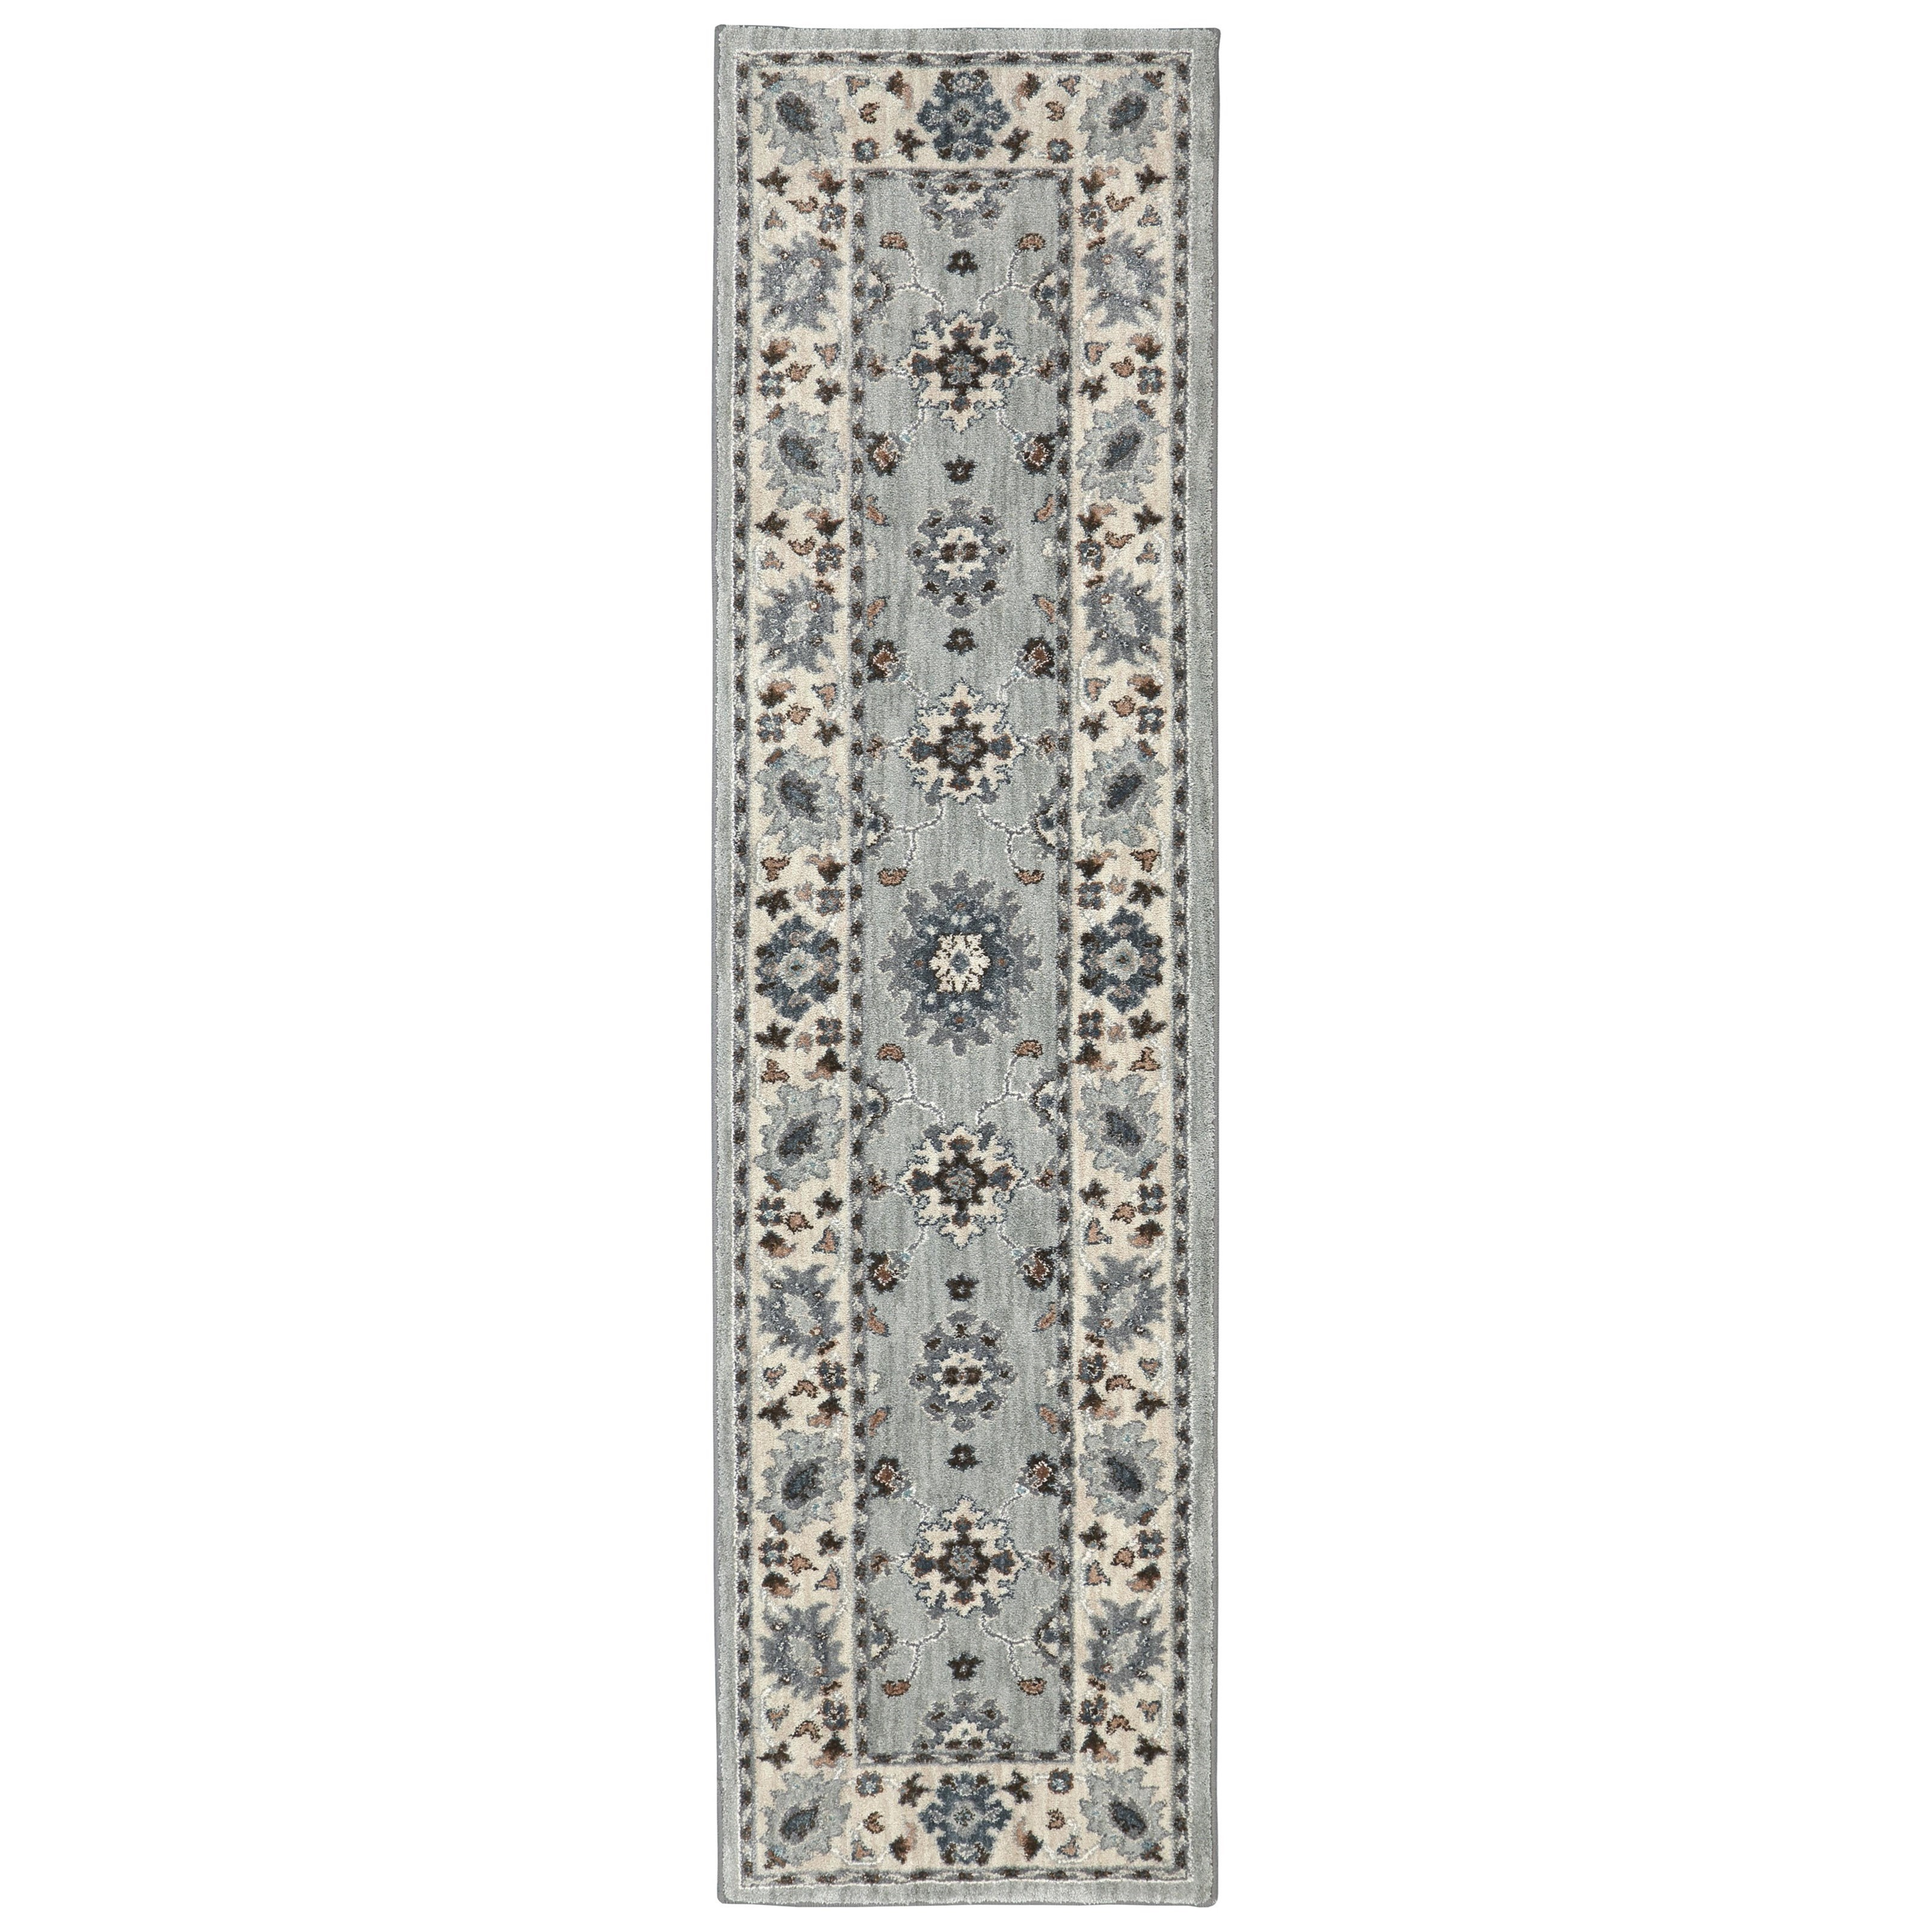 Karastan Rugs Euphoria 2'1x7'10 Kirkwall Willow Grey Rug Runner - Item Number: 90644 90075 025094